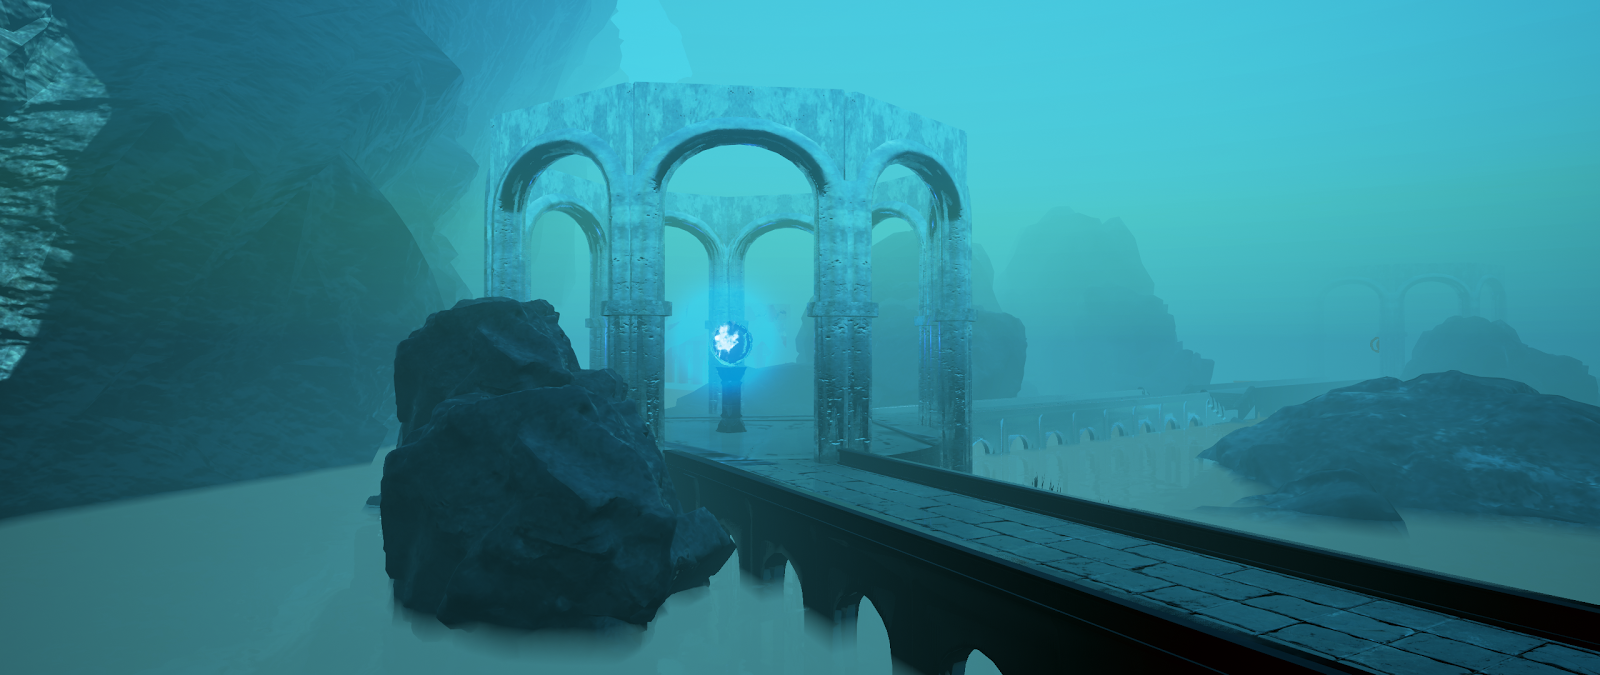 A Hybrid Video Game/Music Video Dives Inside an Underwater Alien World